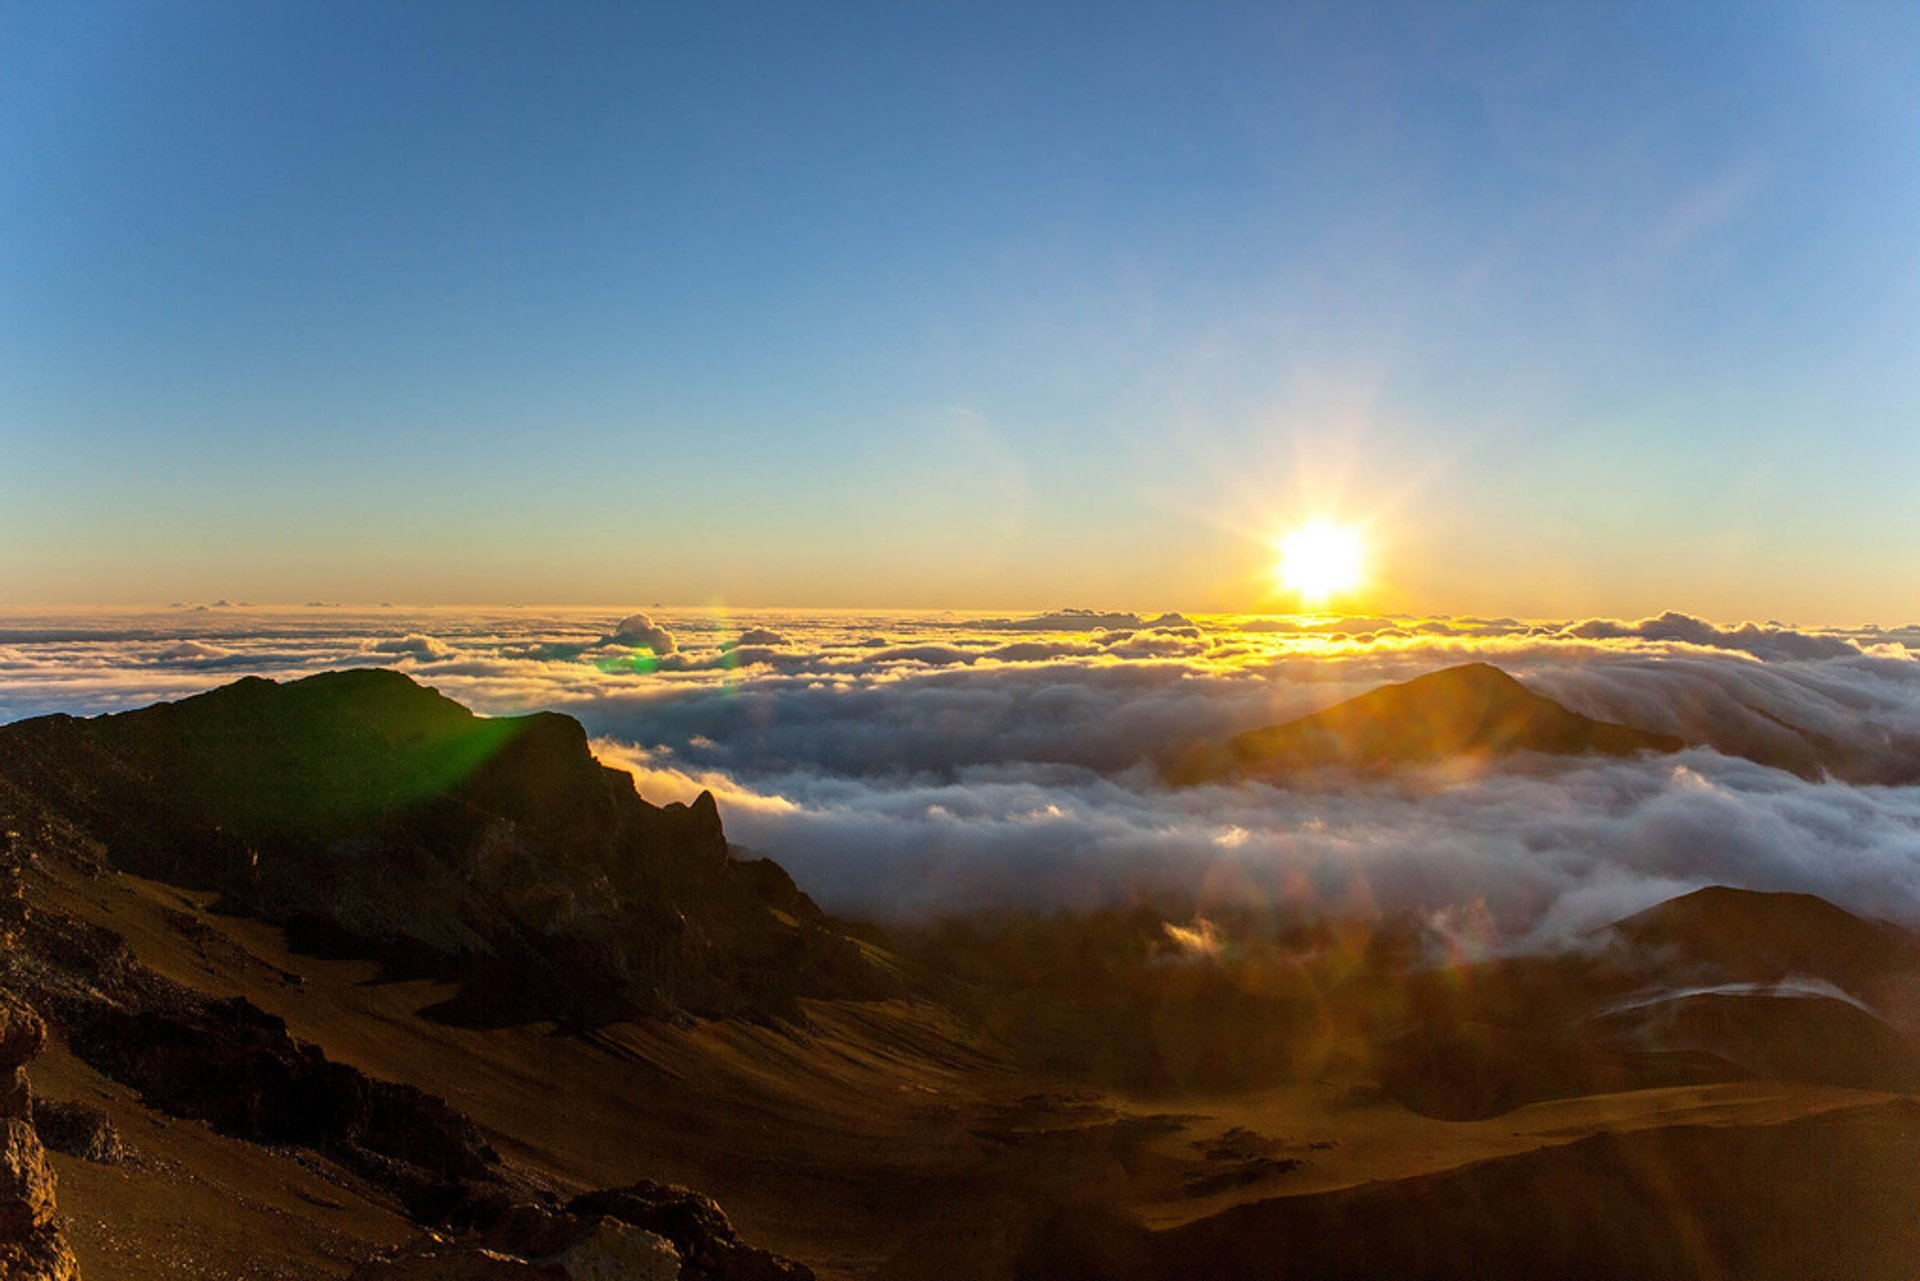 Haleakala Sunrise and Sunset in Hawaii - Best Season